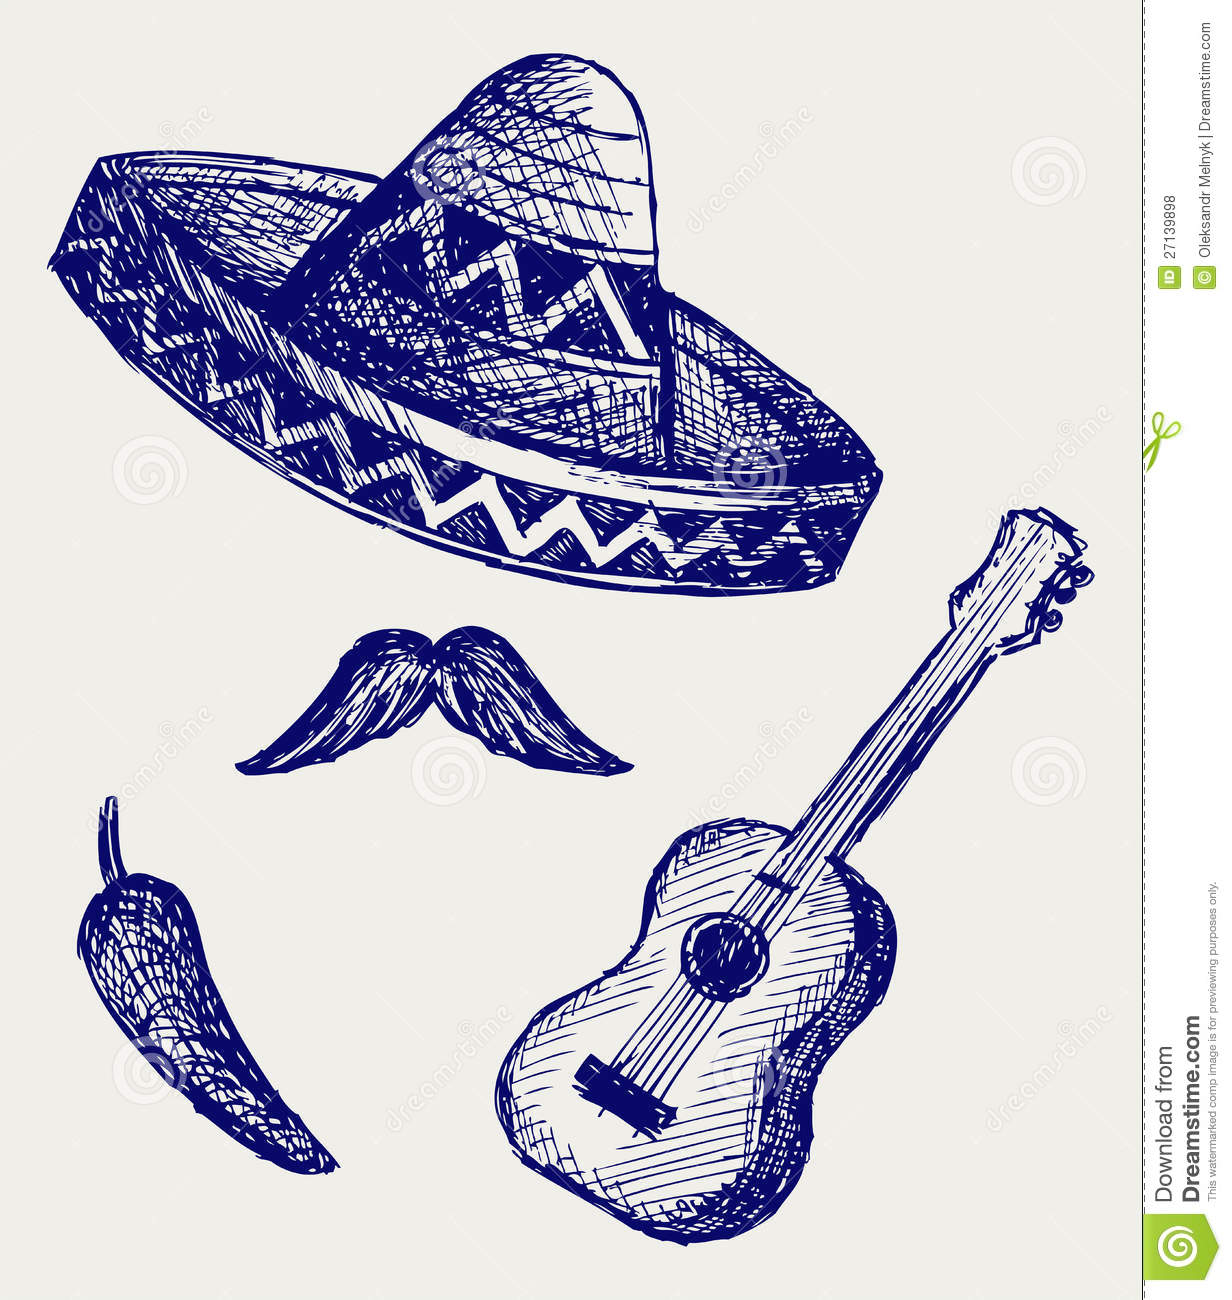 Mexican Symbols Royalty Free Stock Photos - Image: 27139898